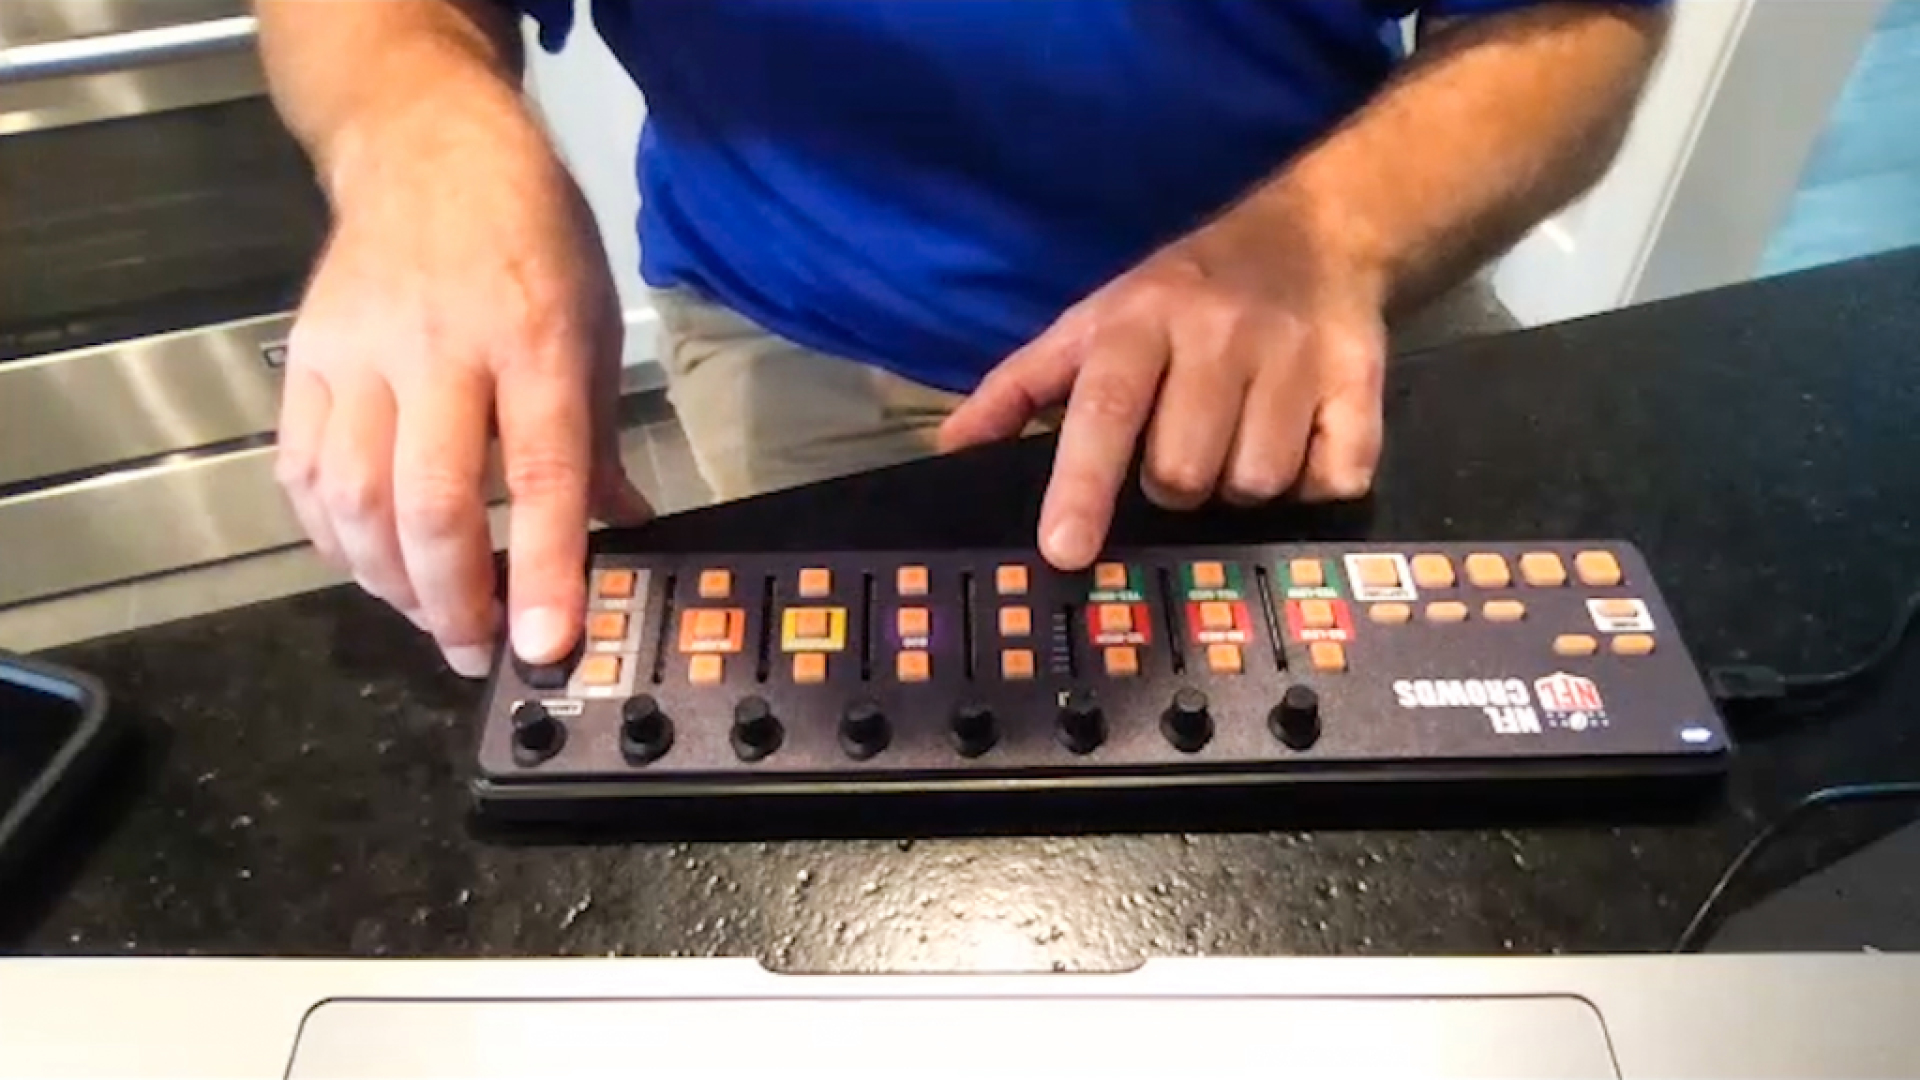 A man with his hands on a small electronic button controller